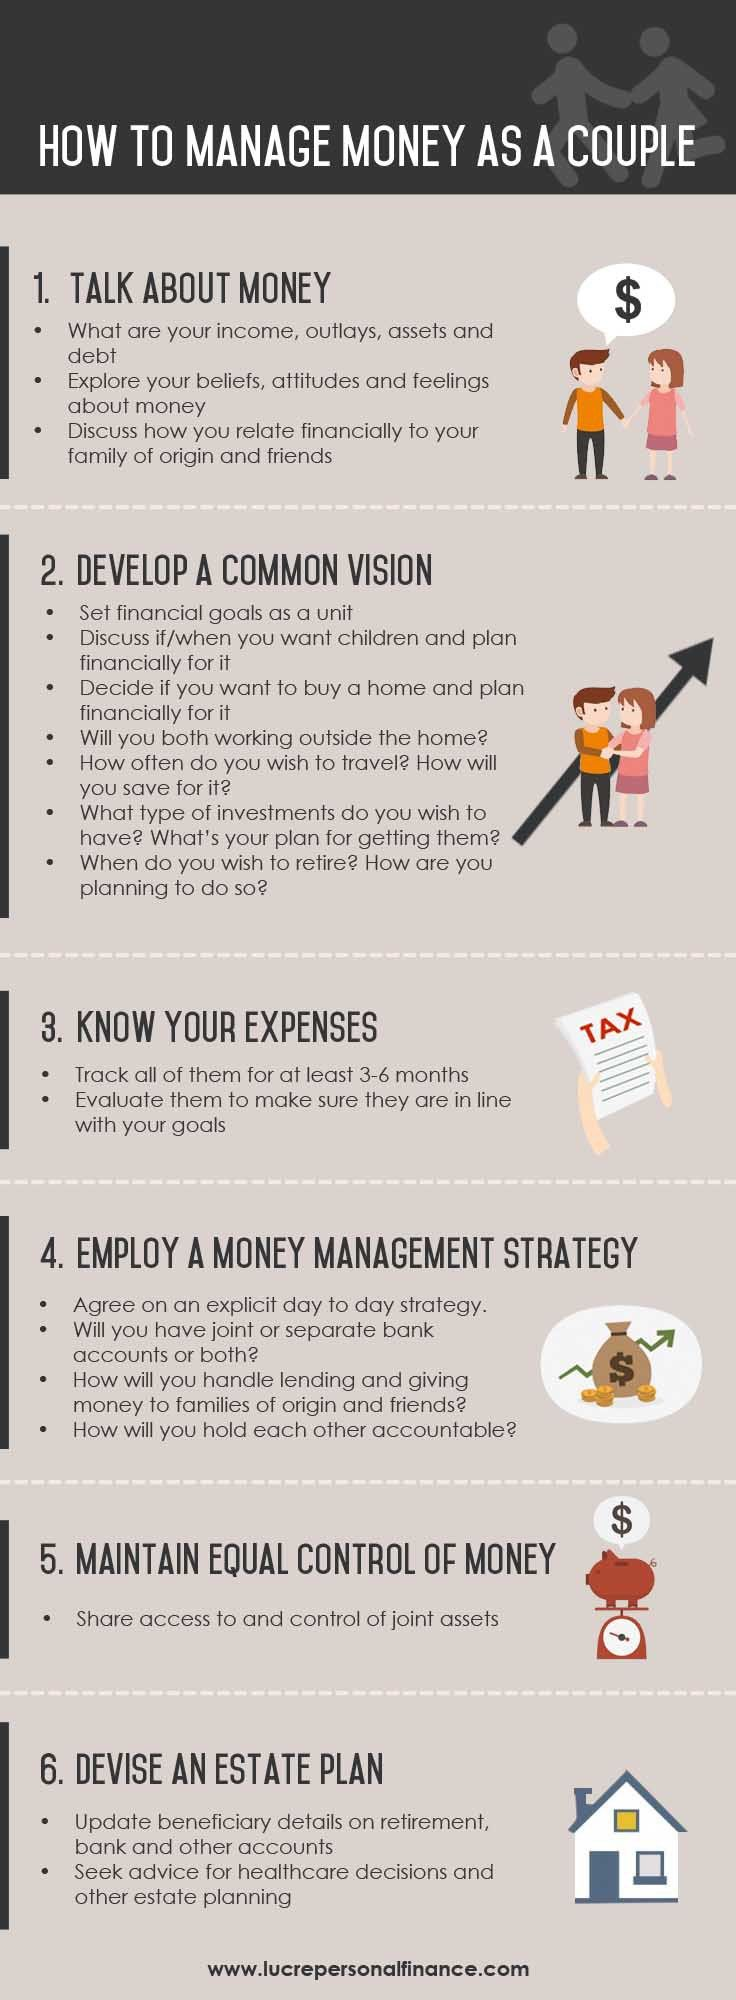 Hola directory of talent claudia morales - How To Manage Money As A Couple Married Or Not 6 Tips